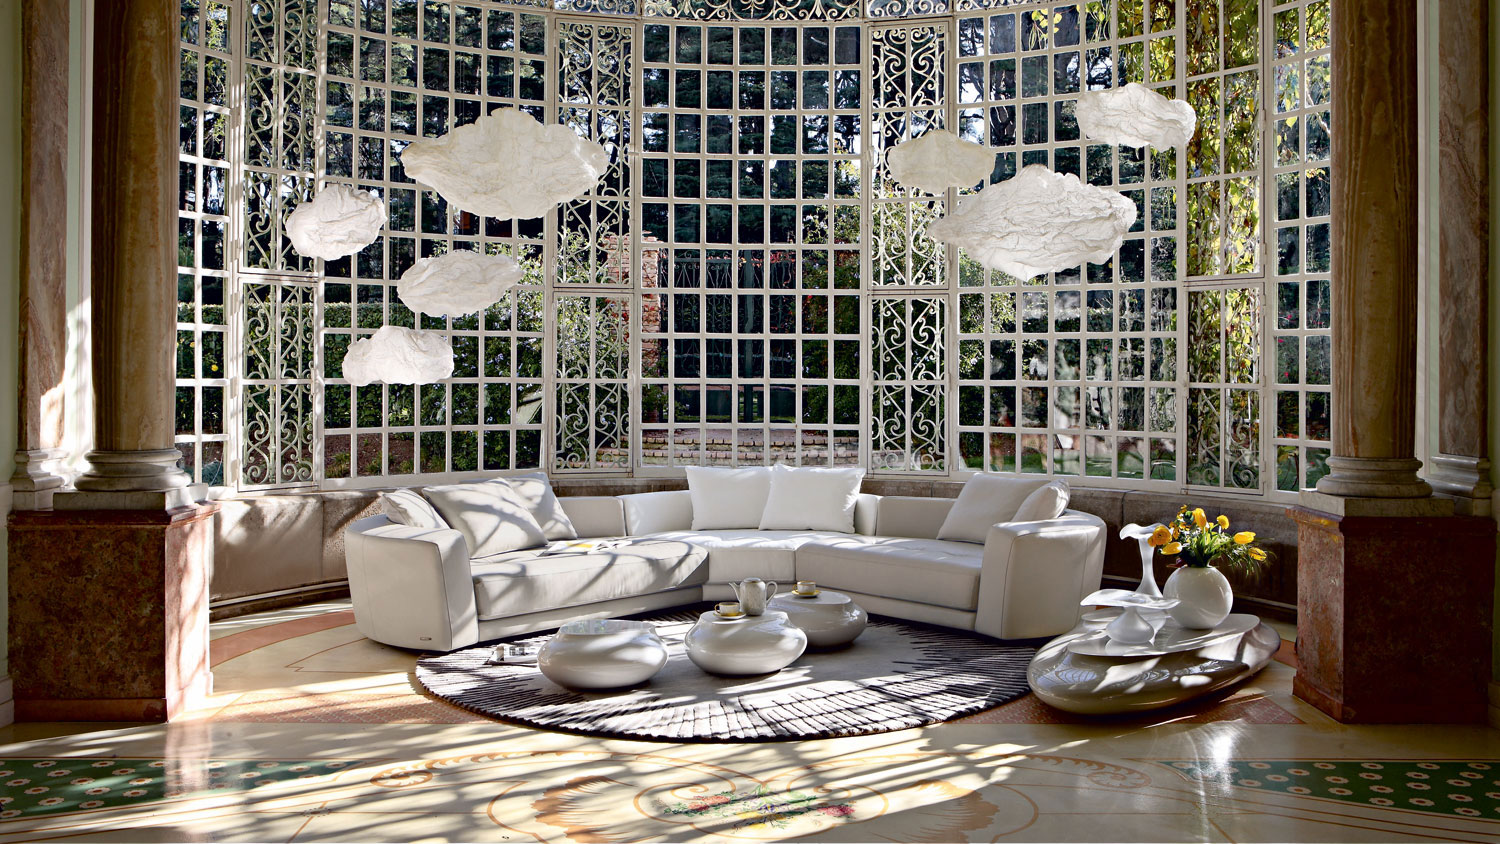 Moderne Sofa Living Room Inspiration: 120 Modern Sofas By Roche Bobois